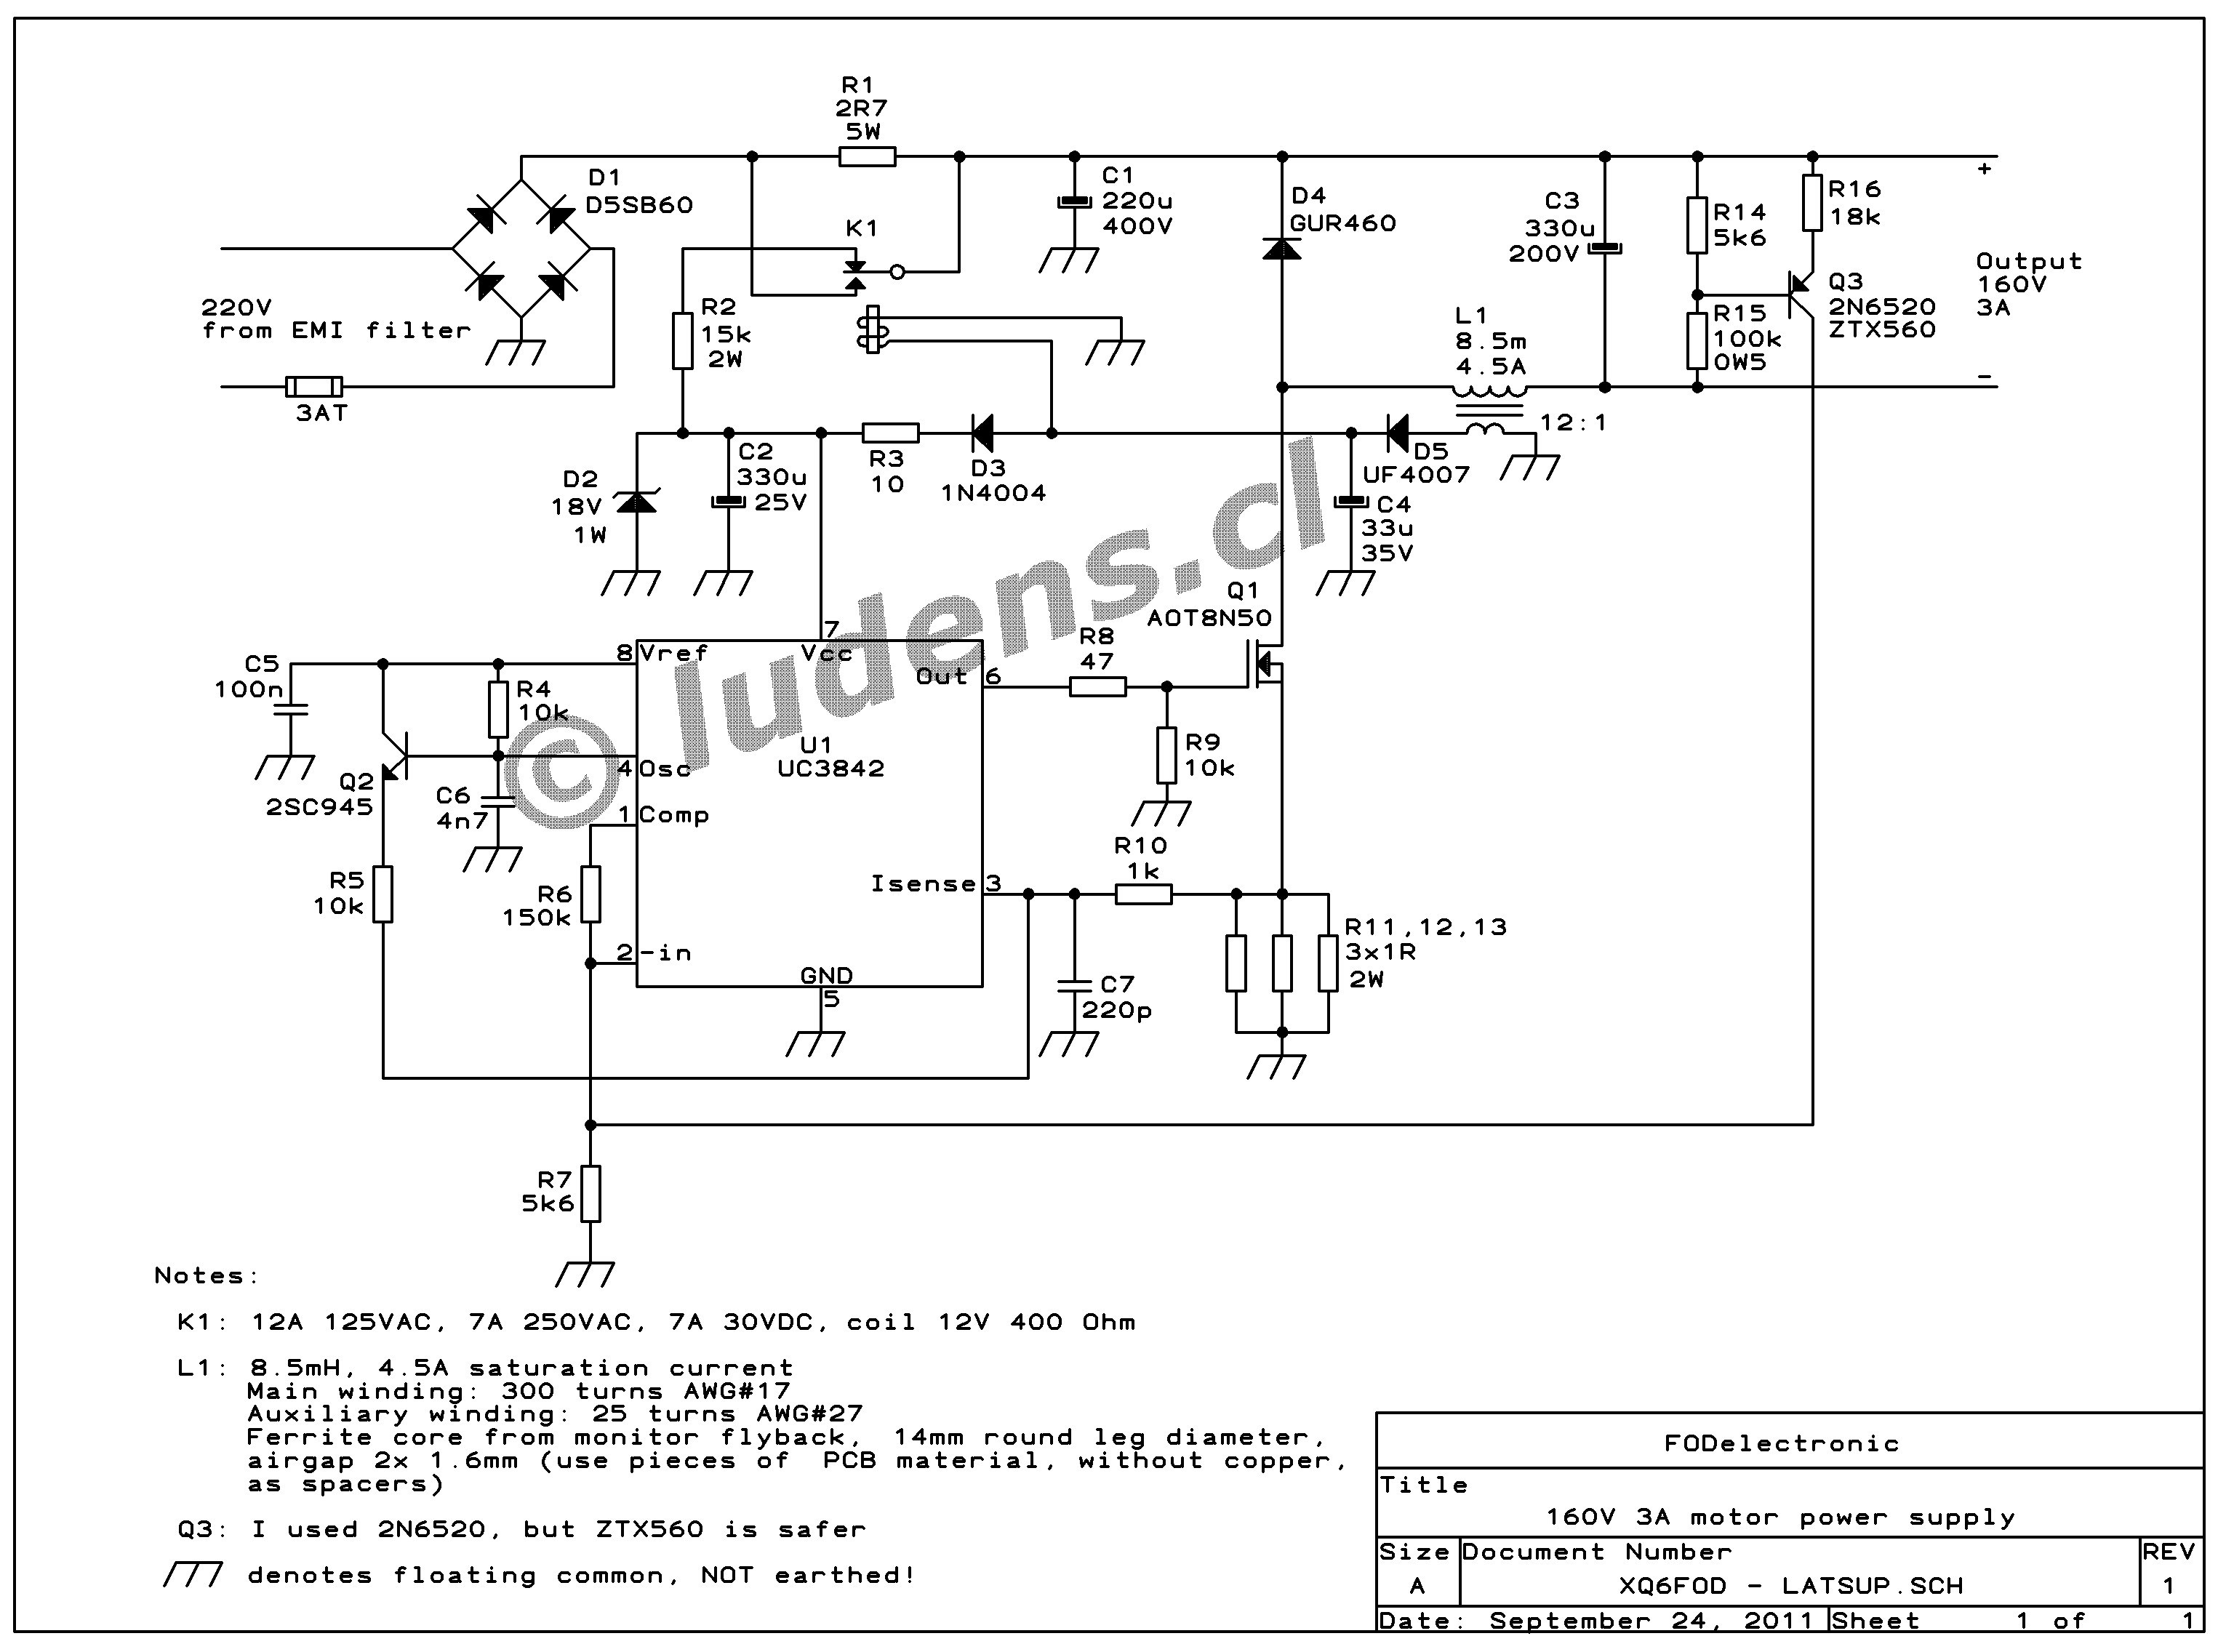 Tattoo Power Supply Schematic For Wiring | Wiring Library - Tattoo Power Supply Wiring Diagram